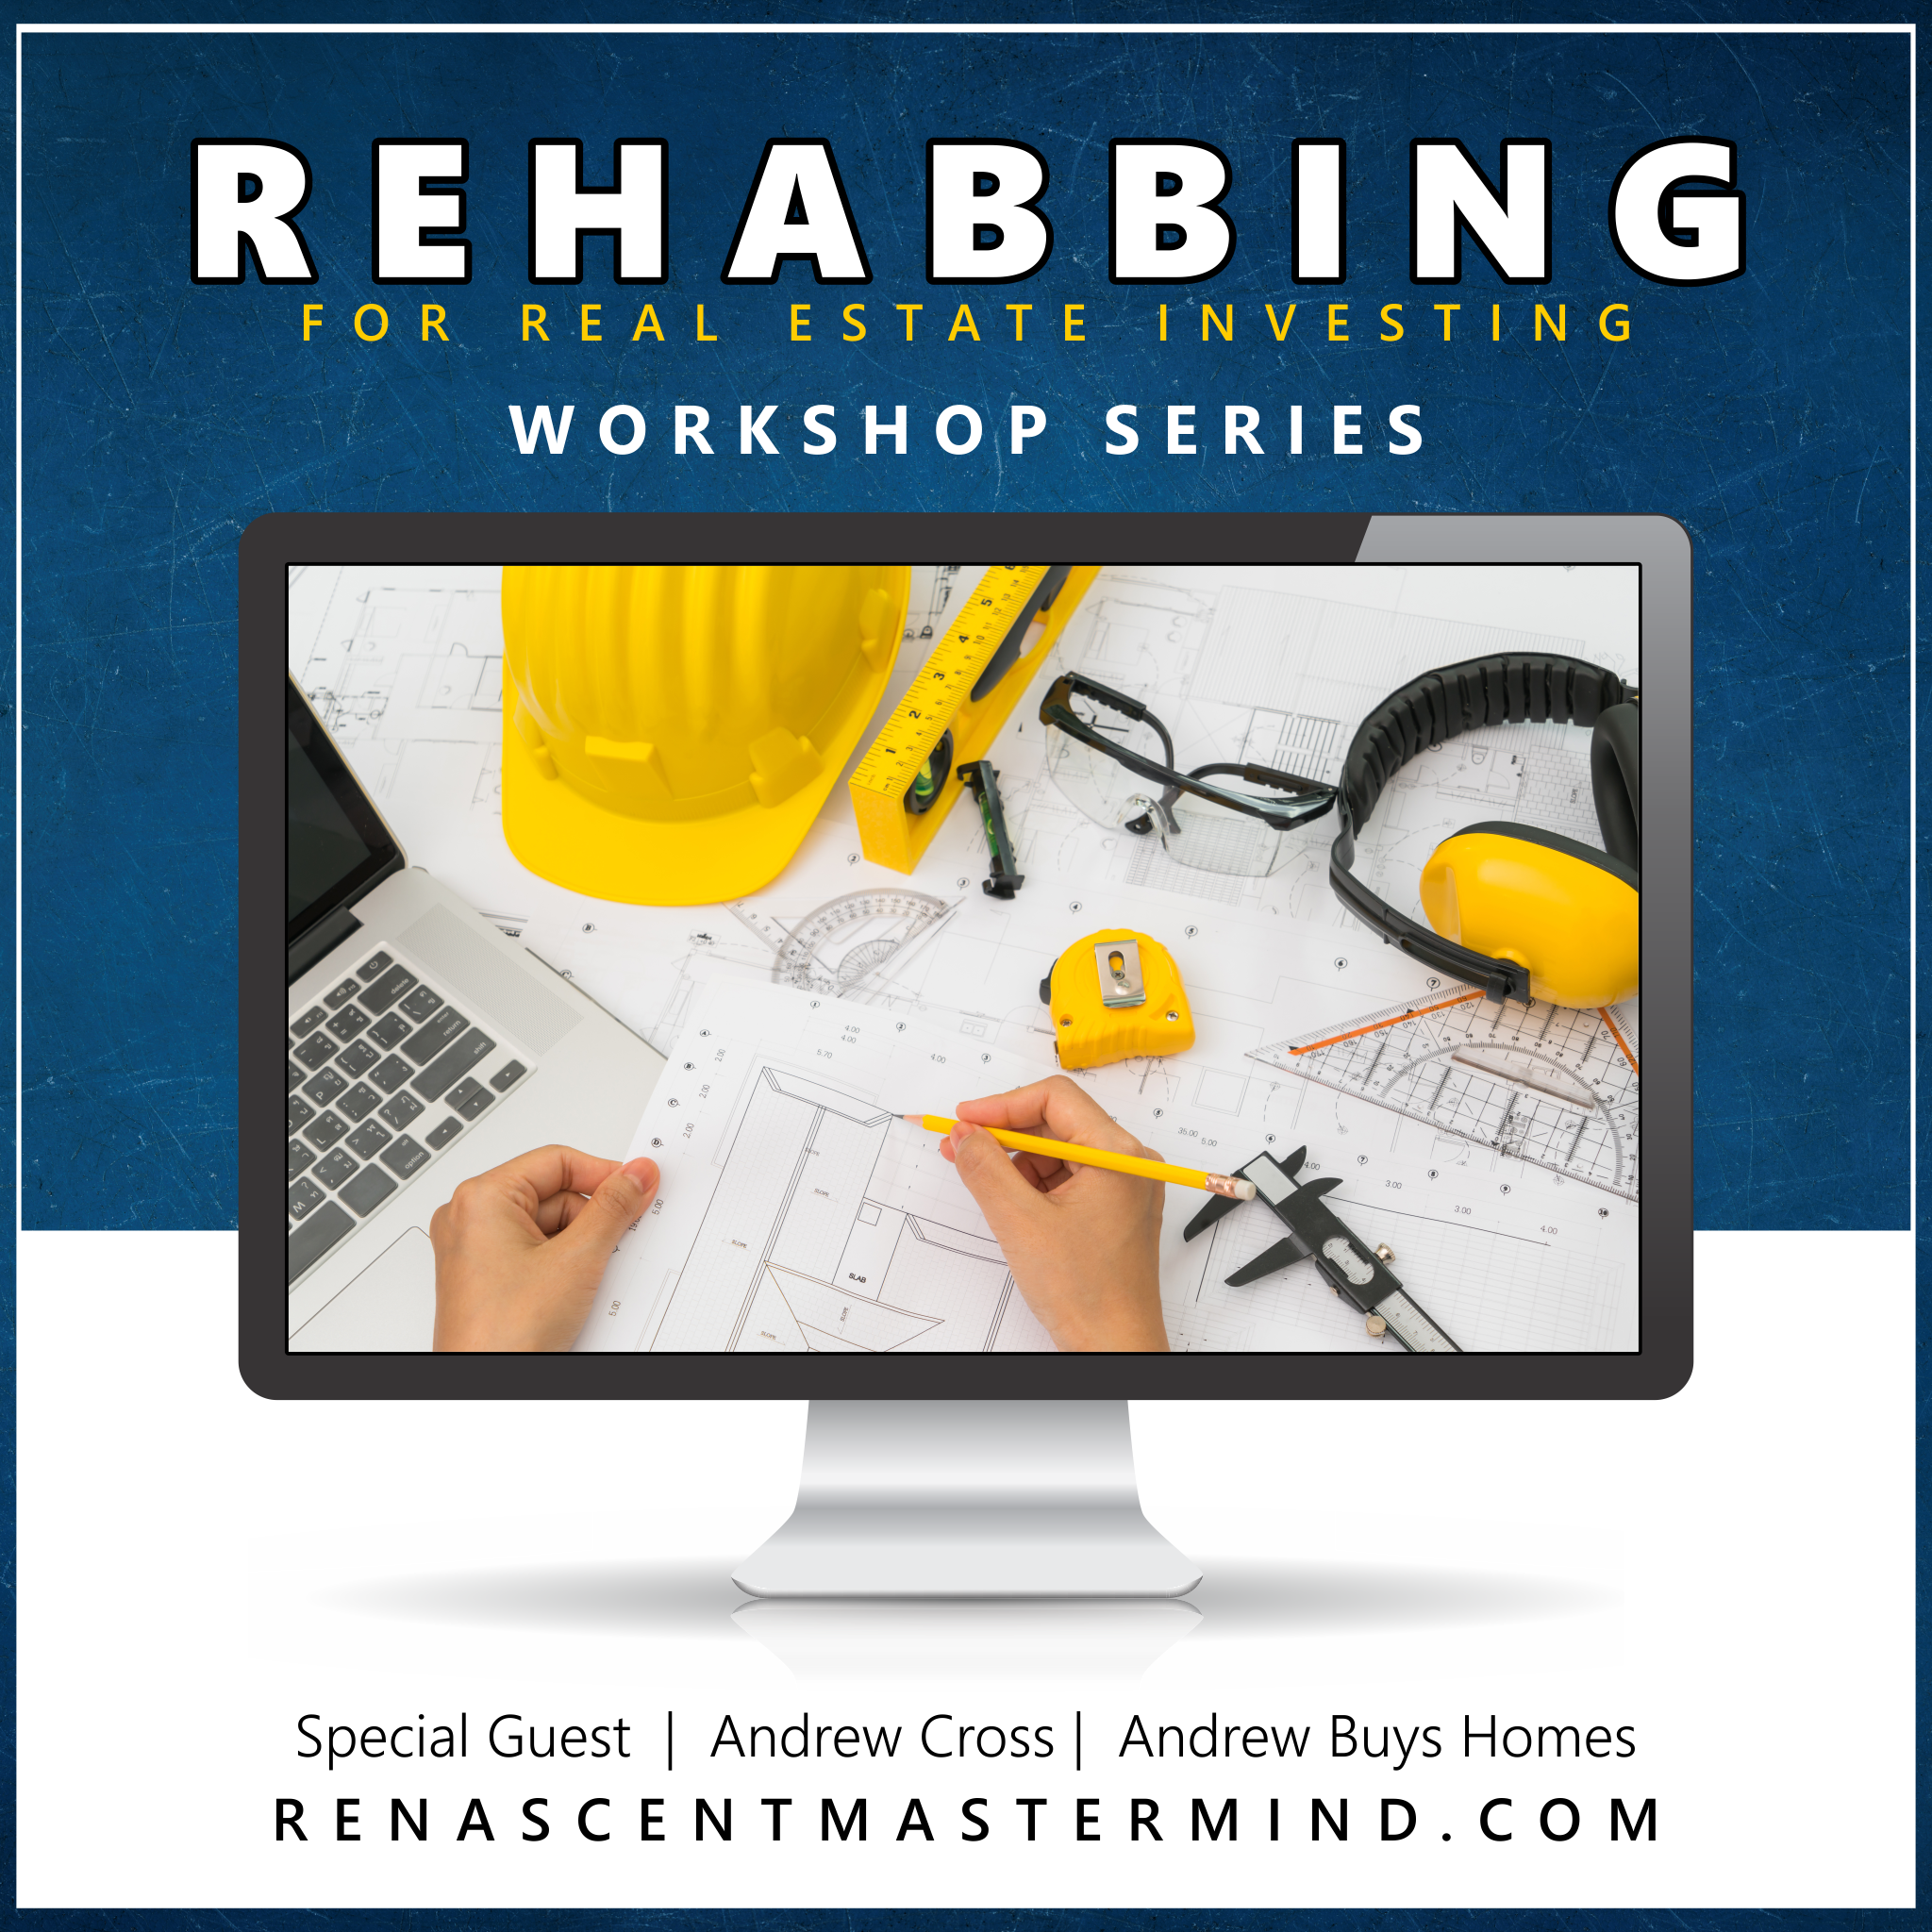 Copy of Rehabbing Houses | Workshop Series with Renascent Mastermind